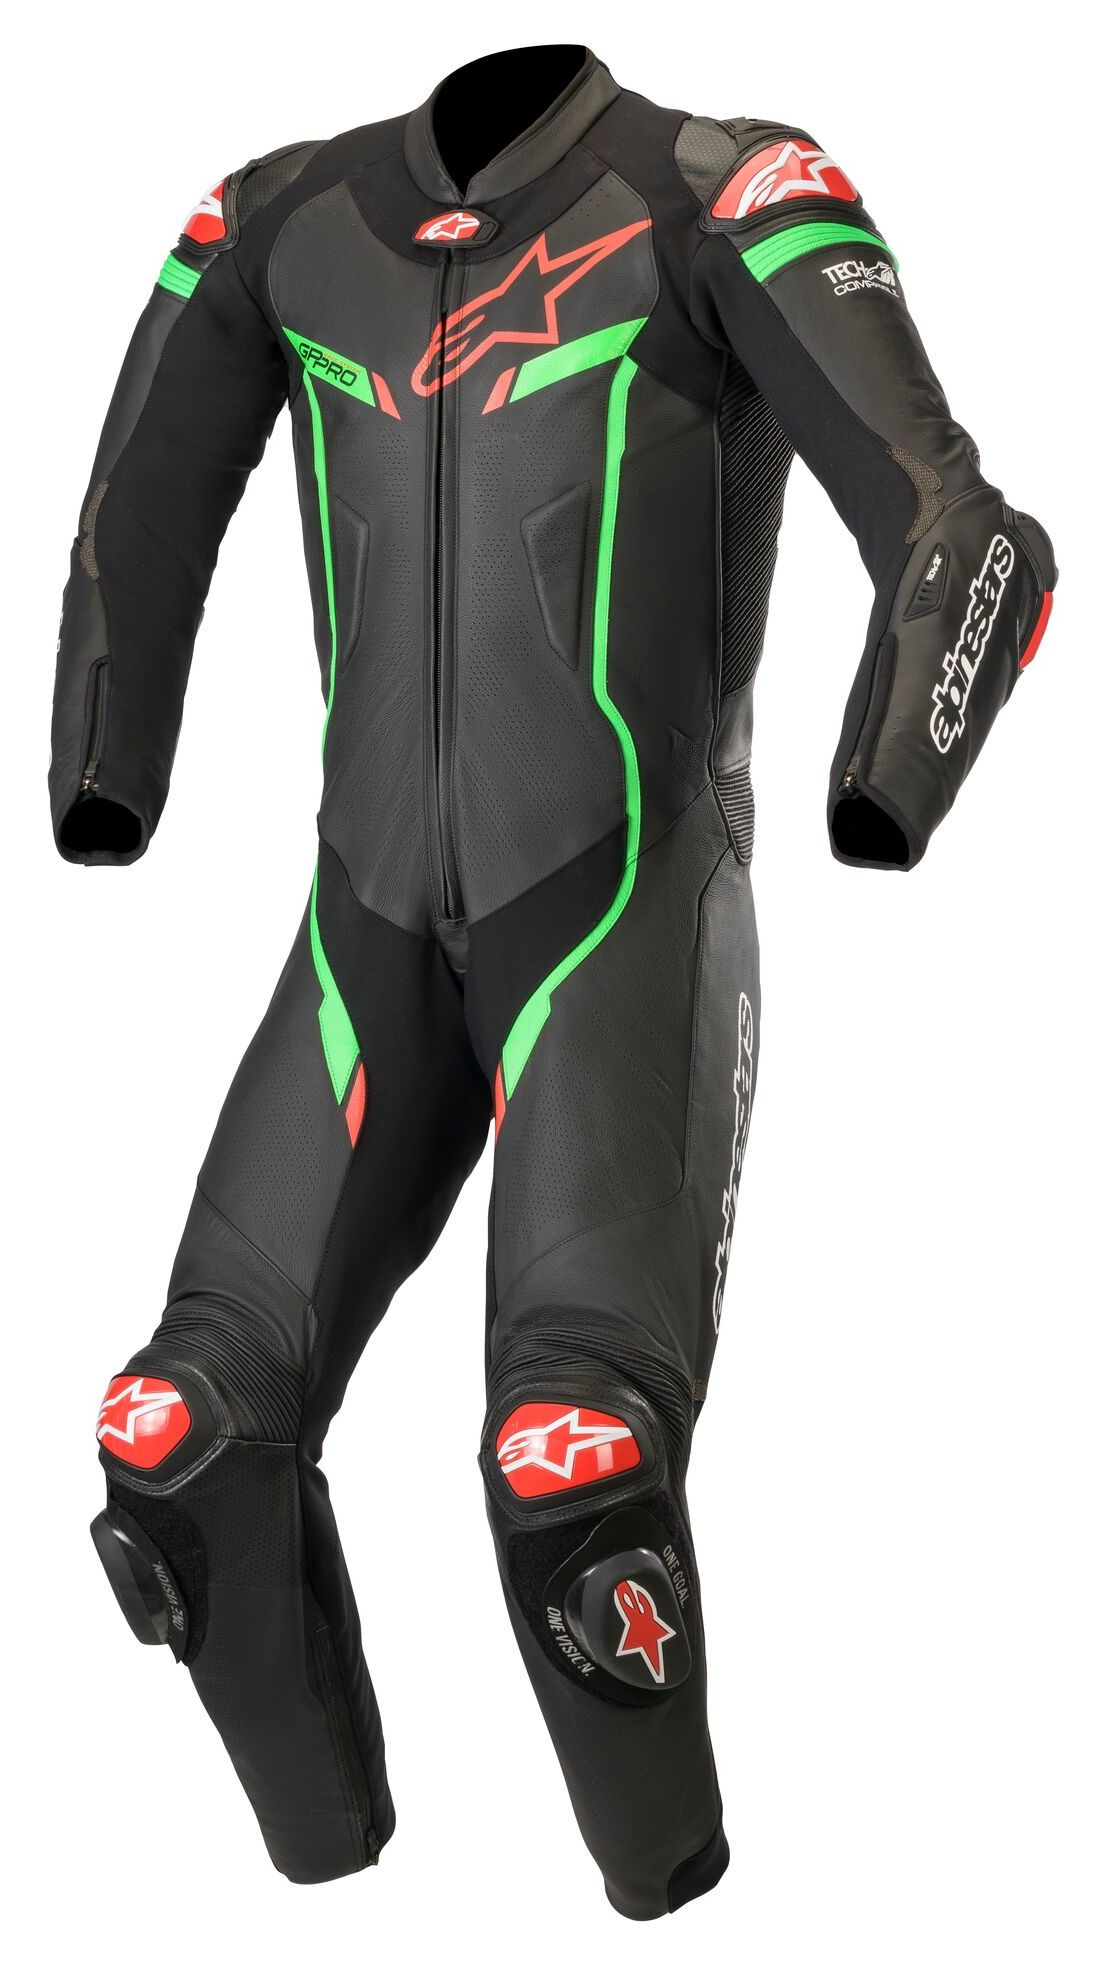 Pro Taper Handlebars >> Alpinestars GP Pro v2 Race Suit For Tech Air Race - Cycle Gear